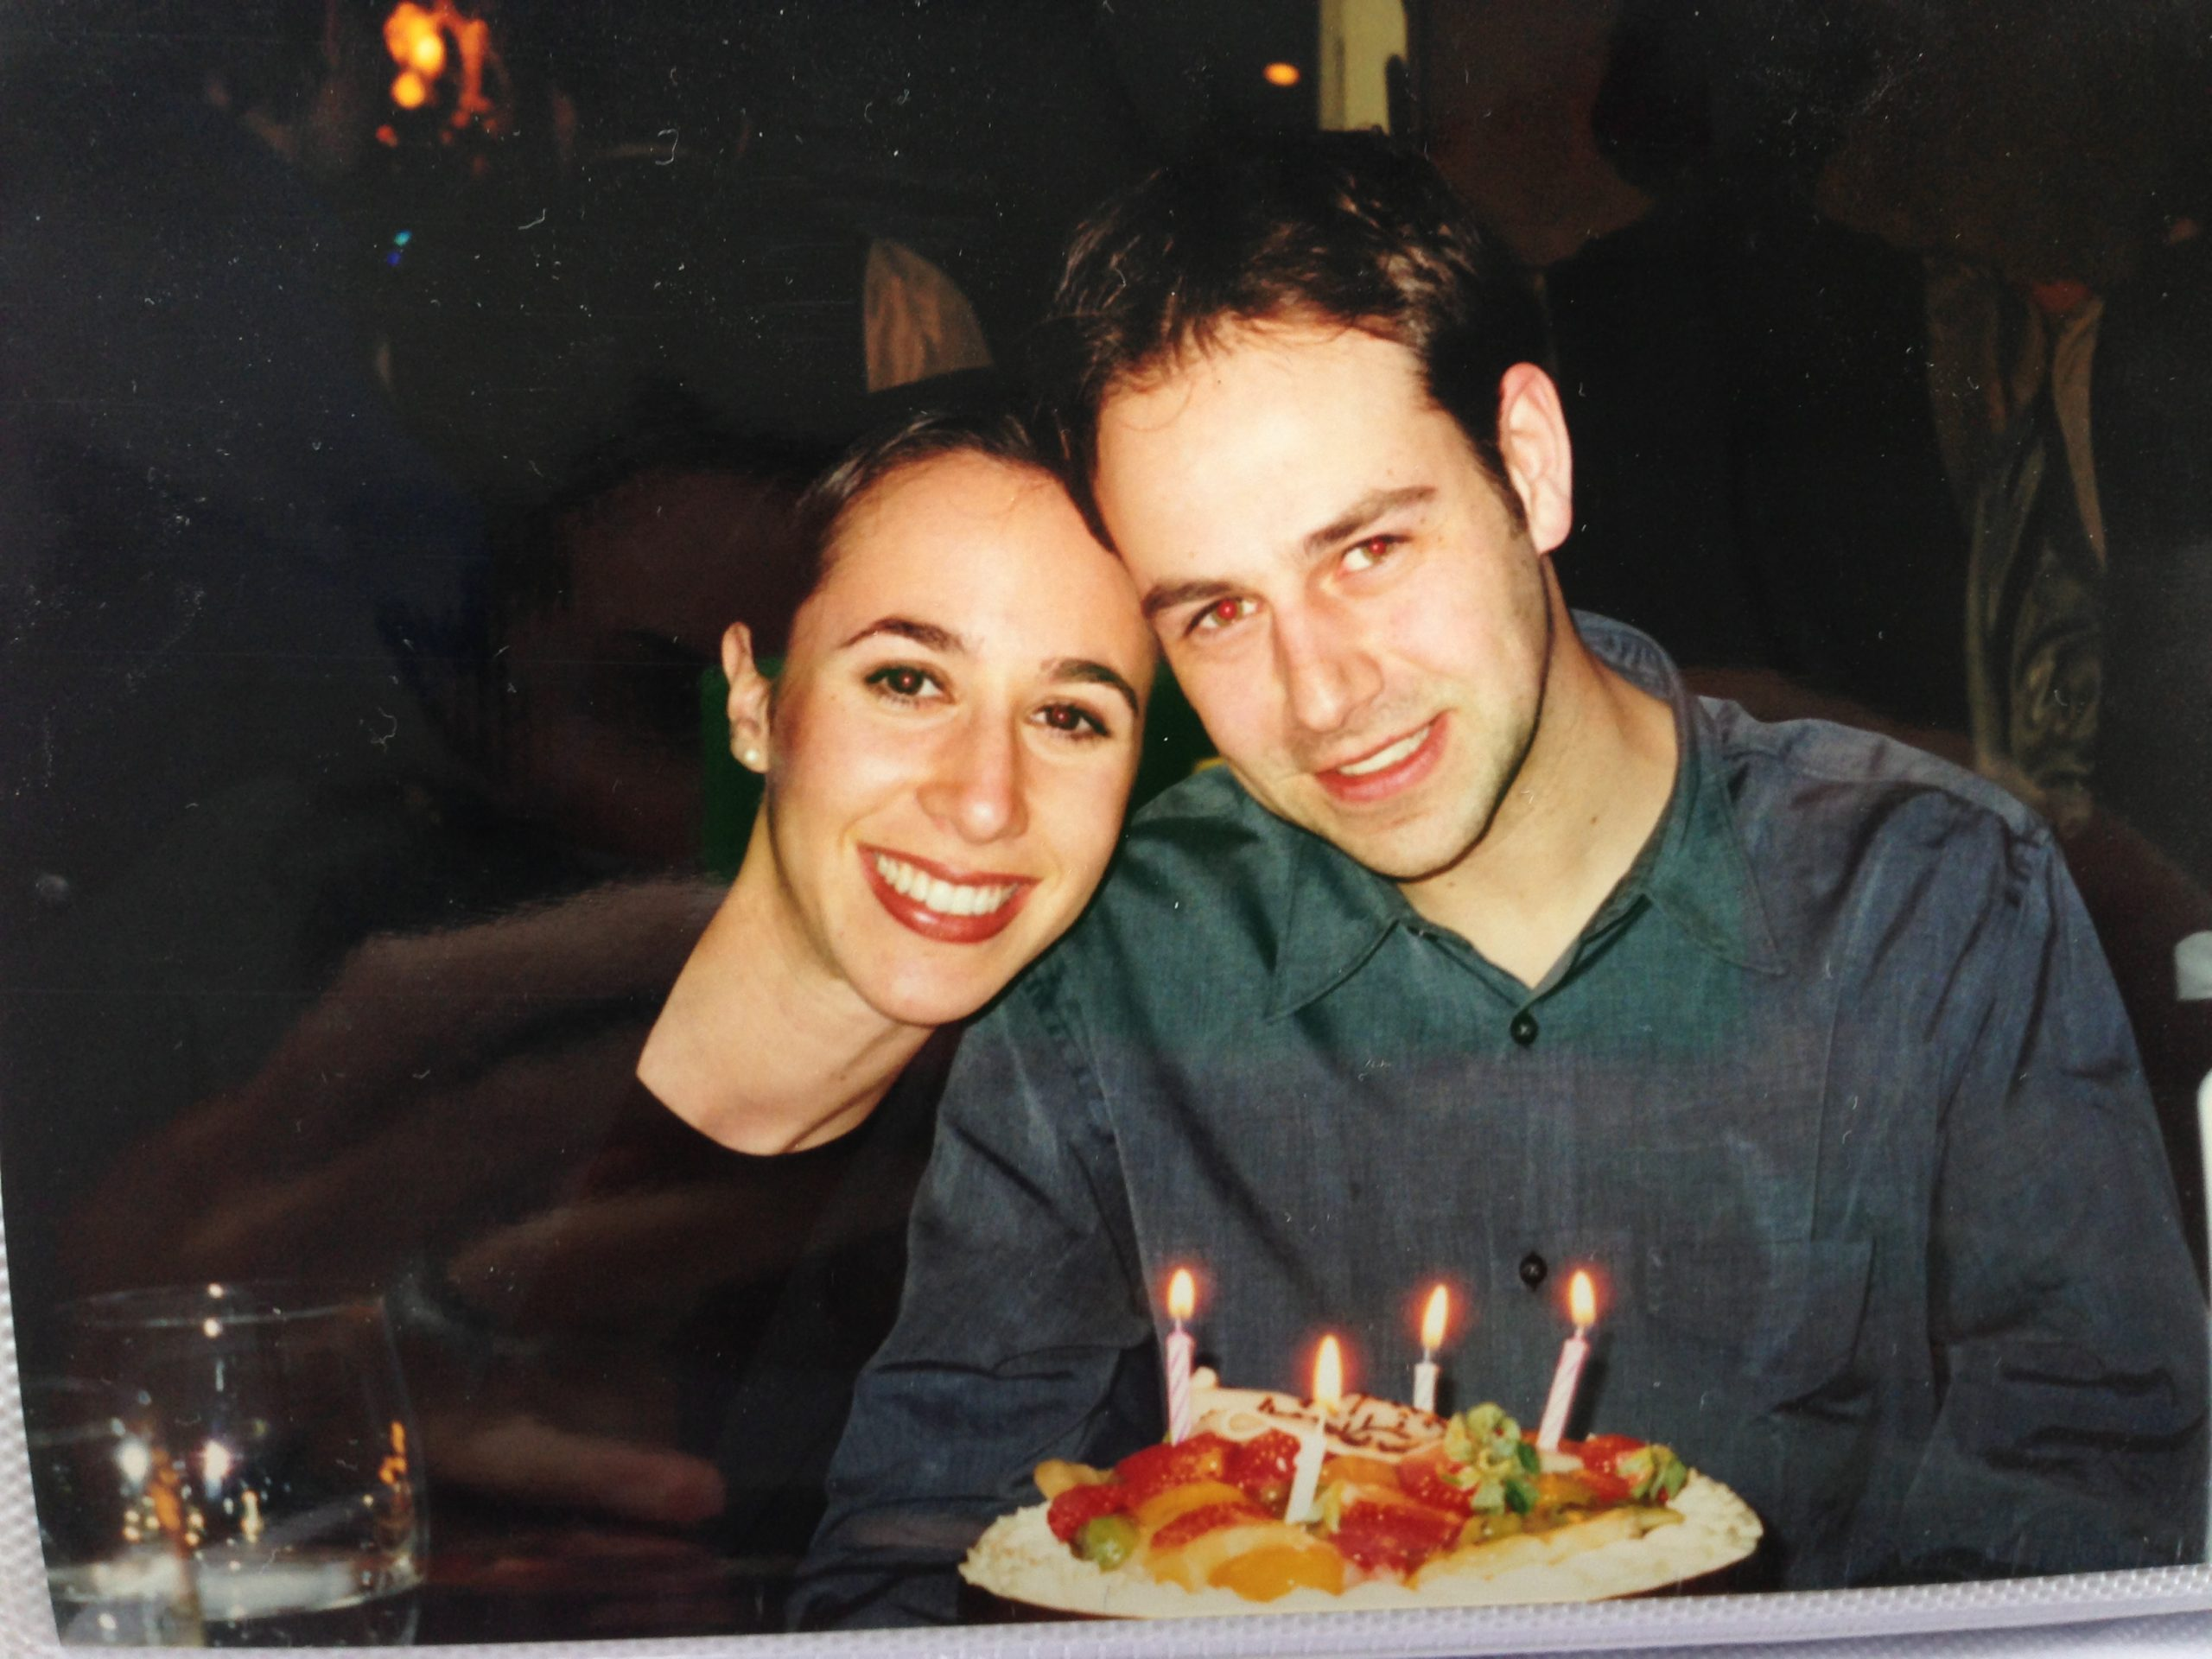 Wordless Wednesday: Celebrating 13 Years Married